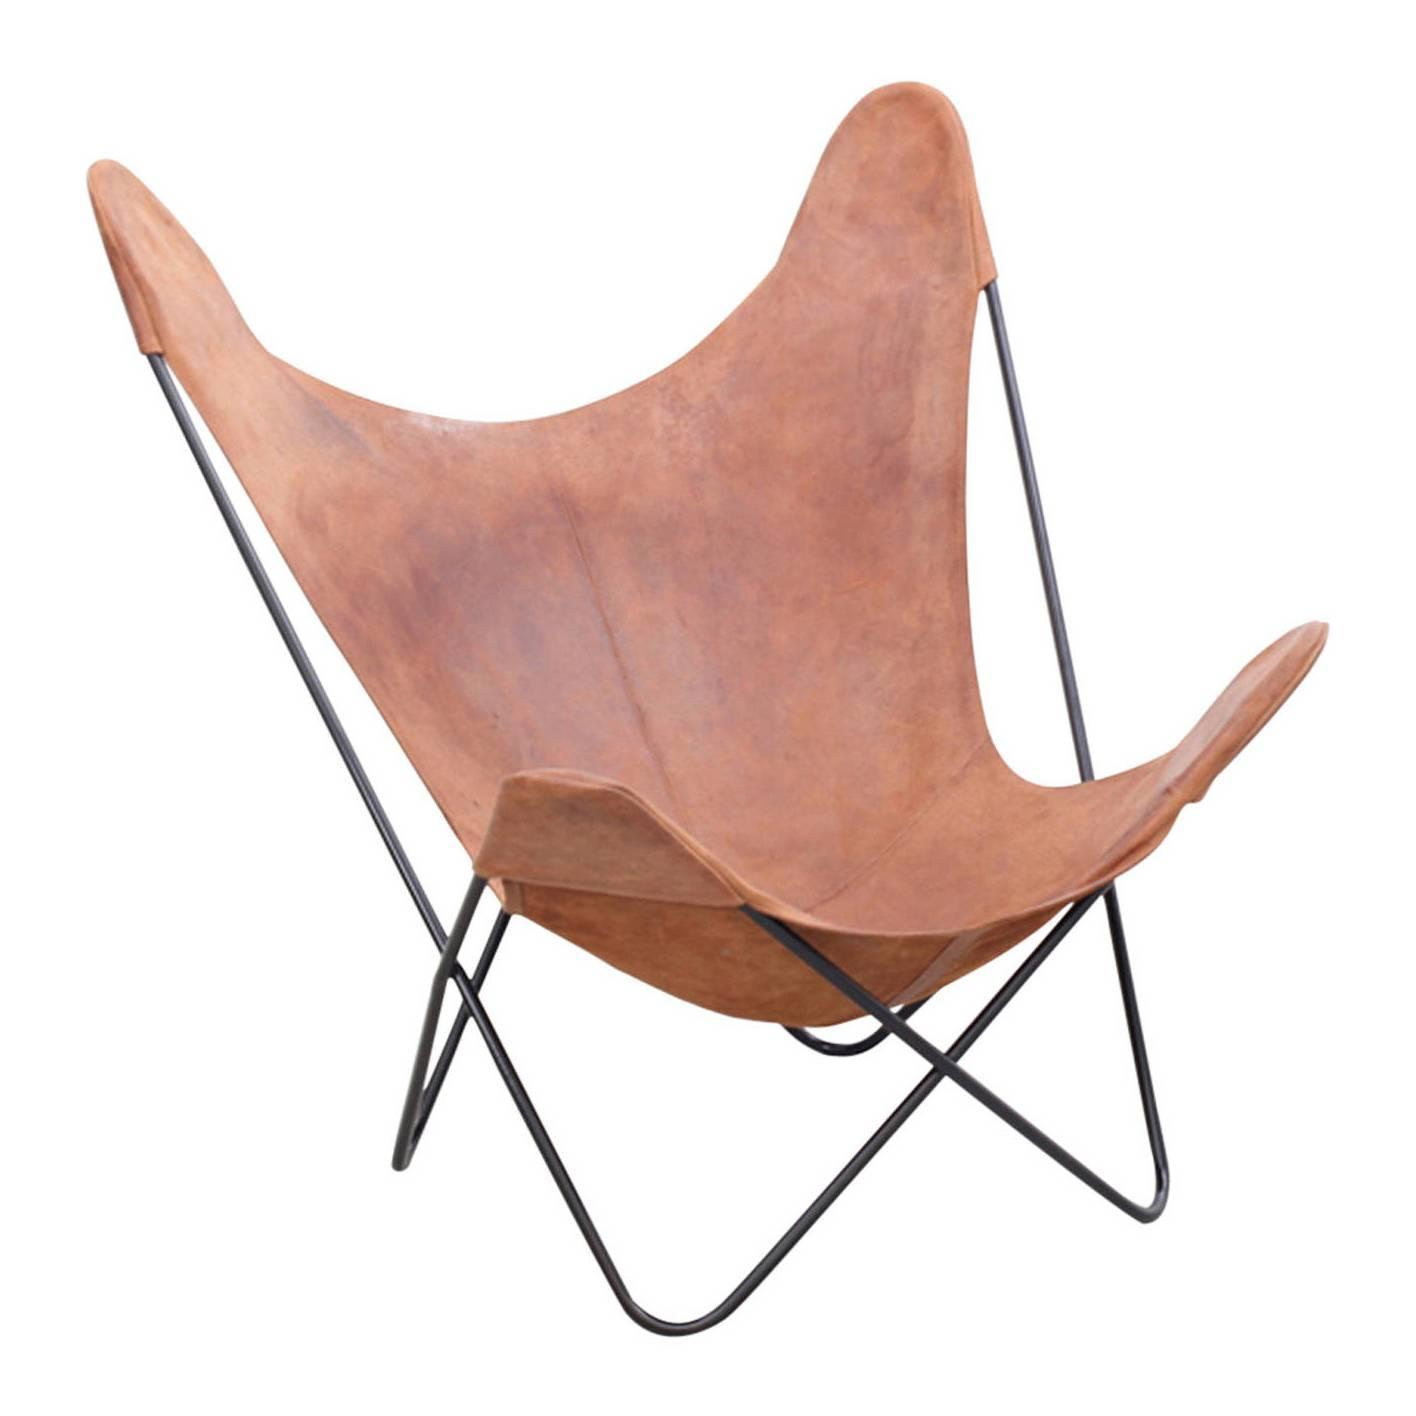 Vintage Hardoy Butterfly Chair In Original Leather At 1stdibs